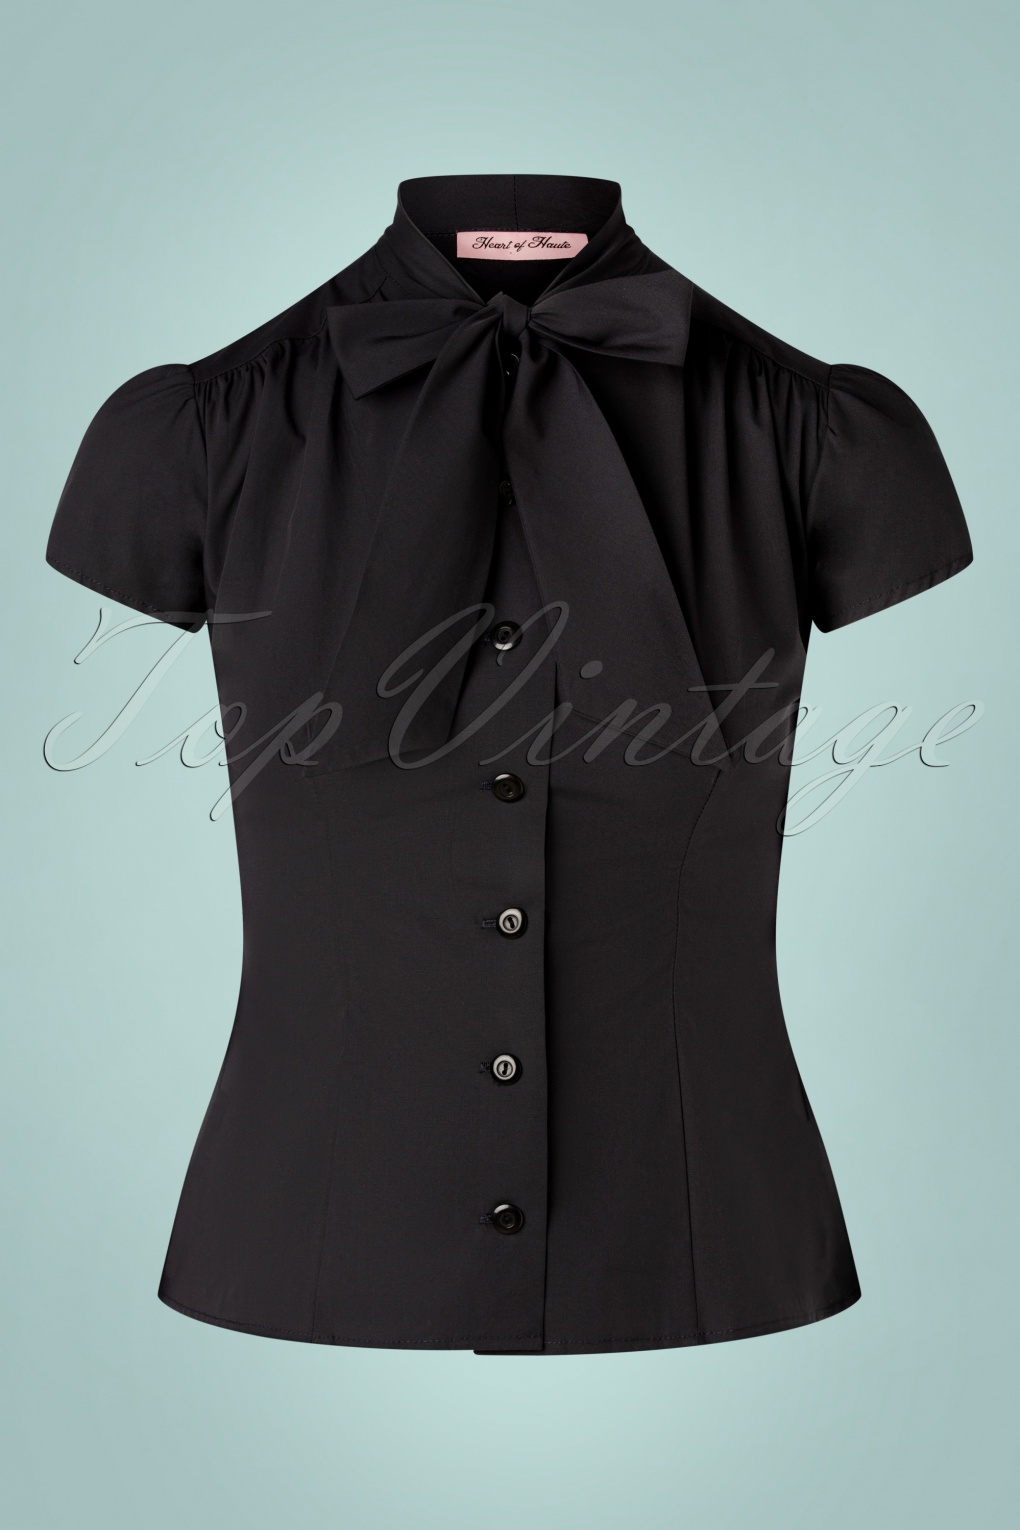 1950s Tops and Blouse Styles 50s Estelle Blouse in Black £68.03 AT vintagedancer.com